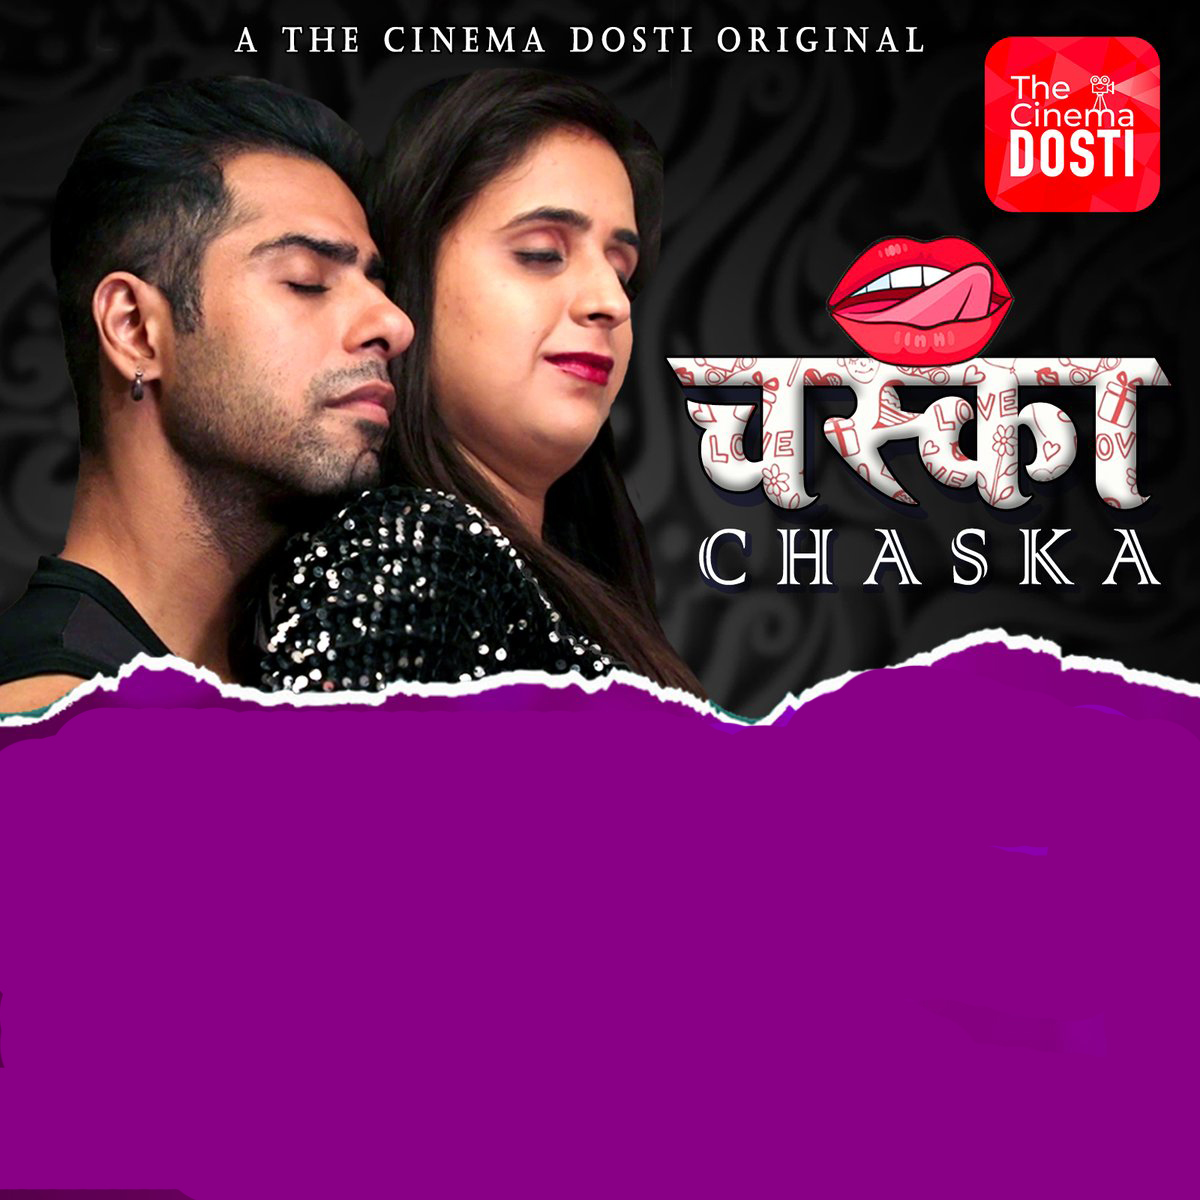 18+ Chaska 2021 CinemaDosti Originals Hindi Short Film 720p HDRip 200MB x264 AAC